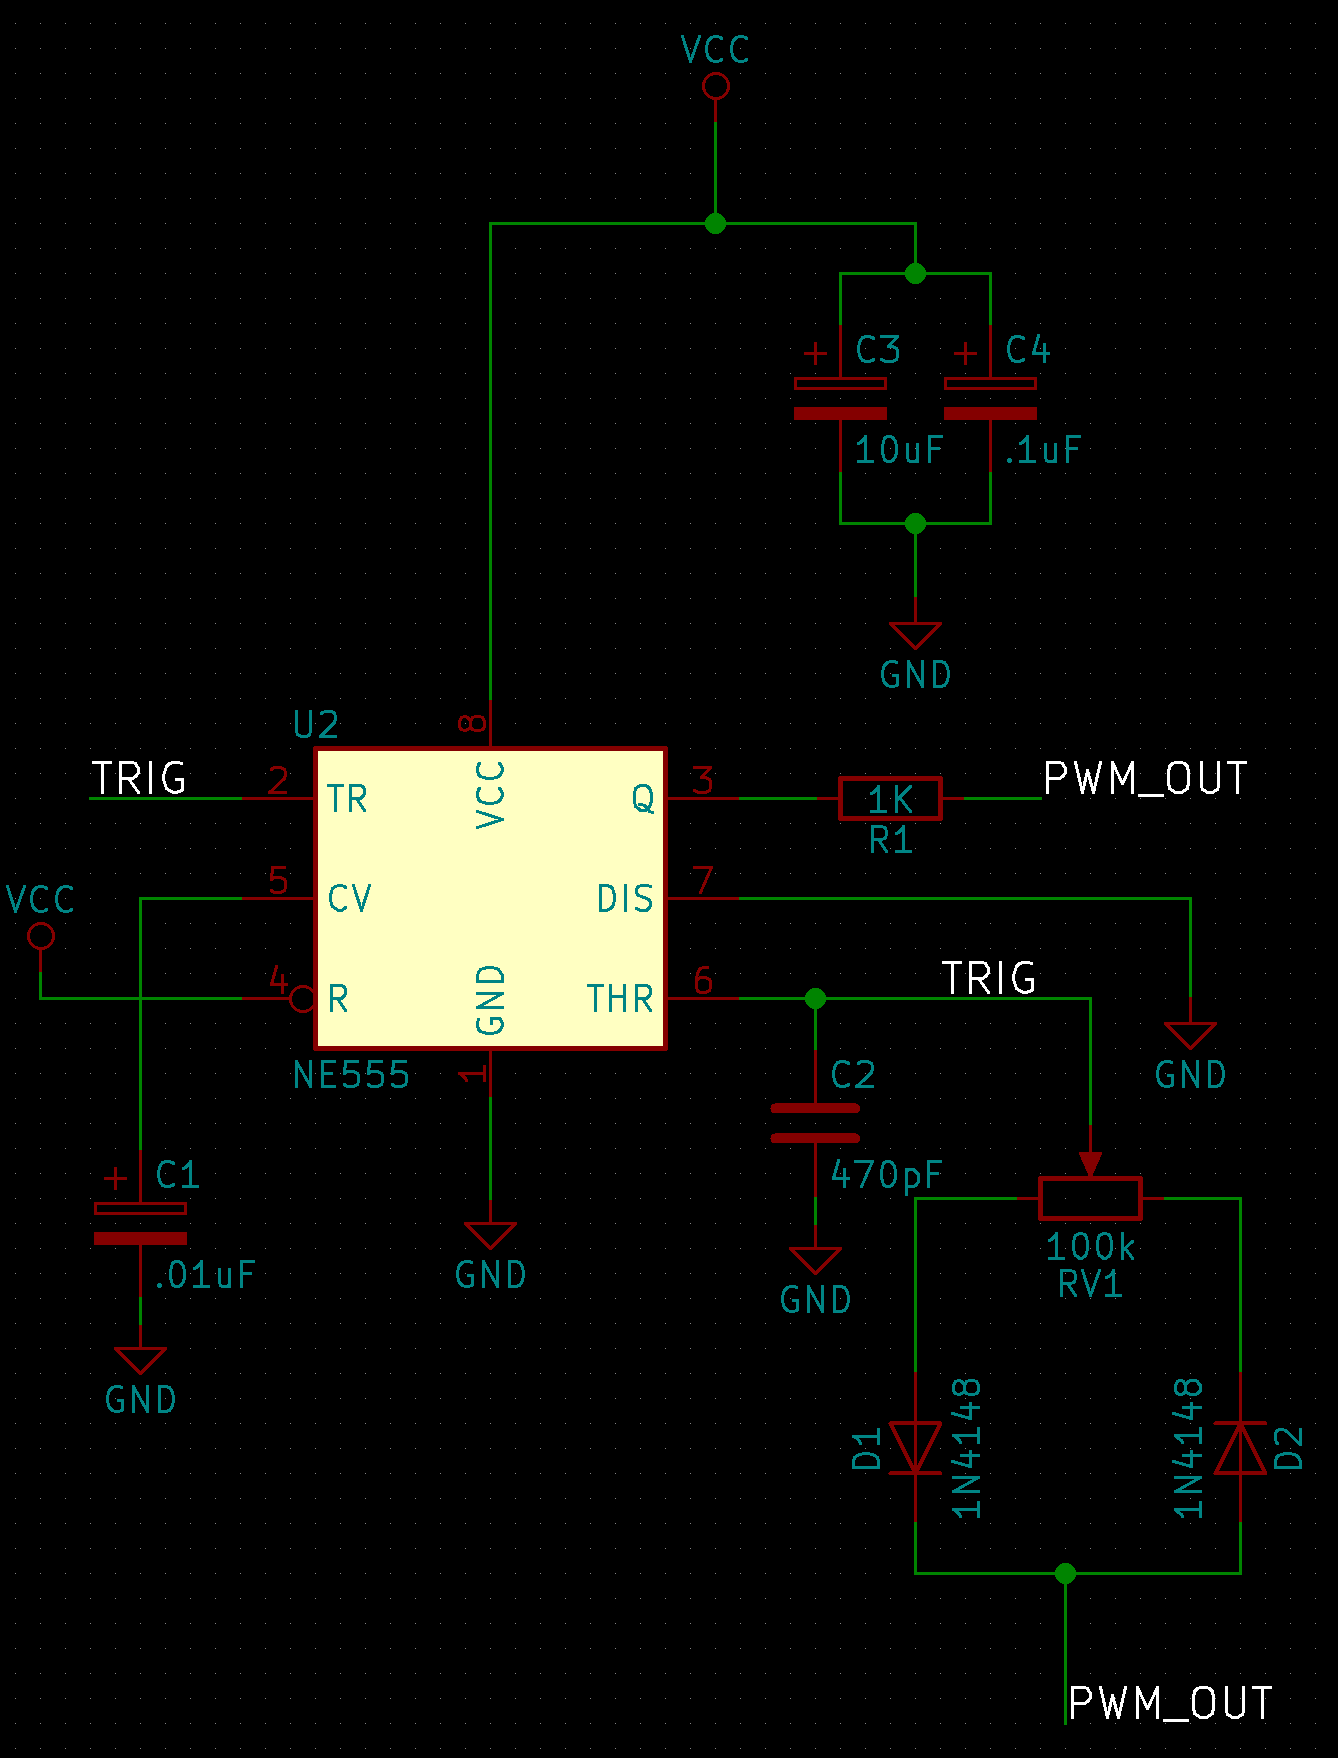 Building A Manual Pwm Fan Controller Through Flatland To Thoughtland Temperature Controlled Regulator Electronic Circuits And The Circuit Needed Have An Output Frequency Of 25 Khz Operate At 5 Volts Given This I Settled On